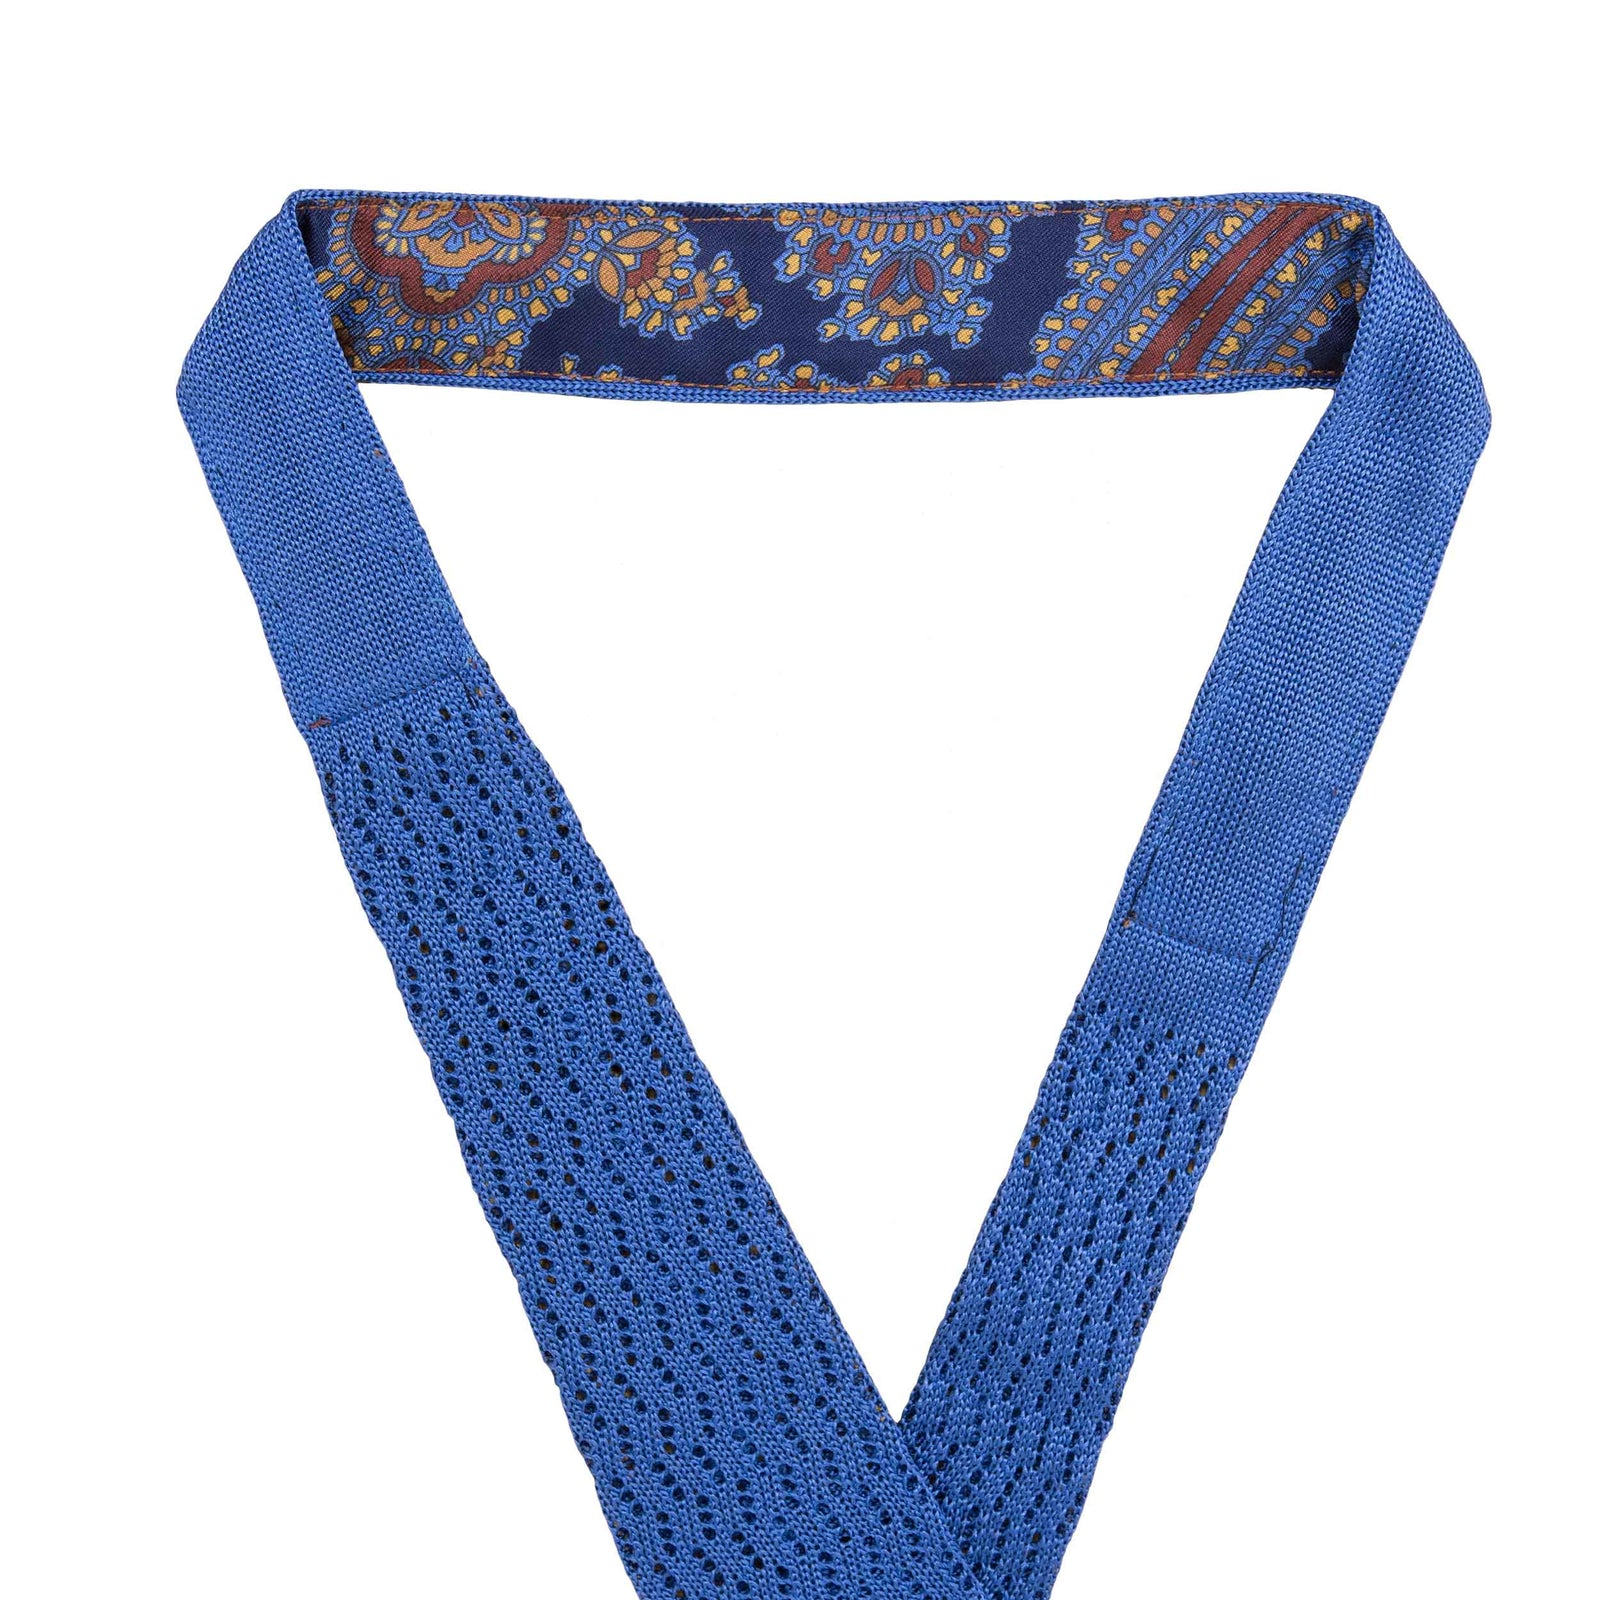 Light Blue Zig Zag V Point Knitted Tie - serafinesilk